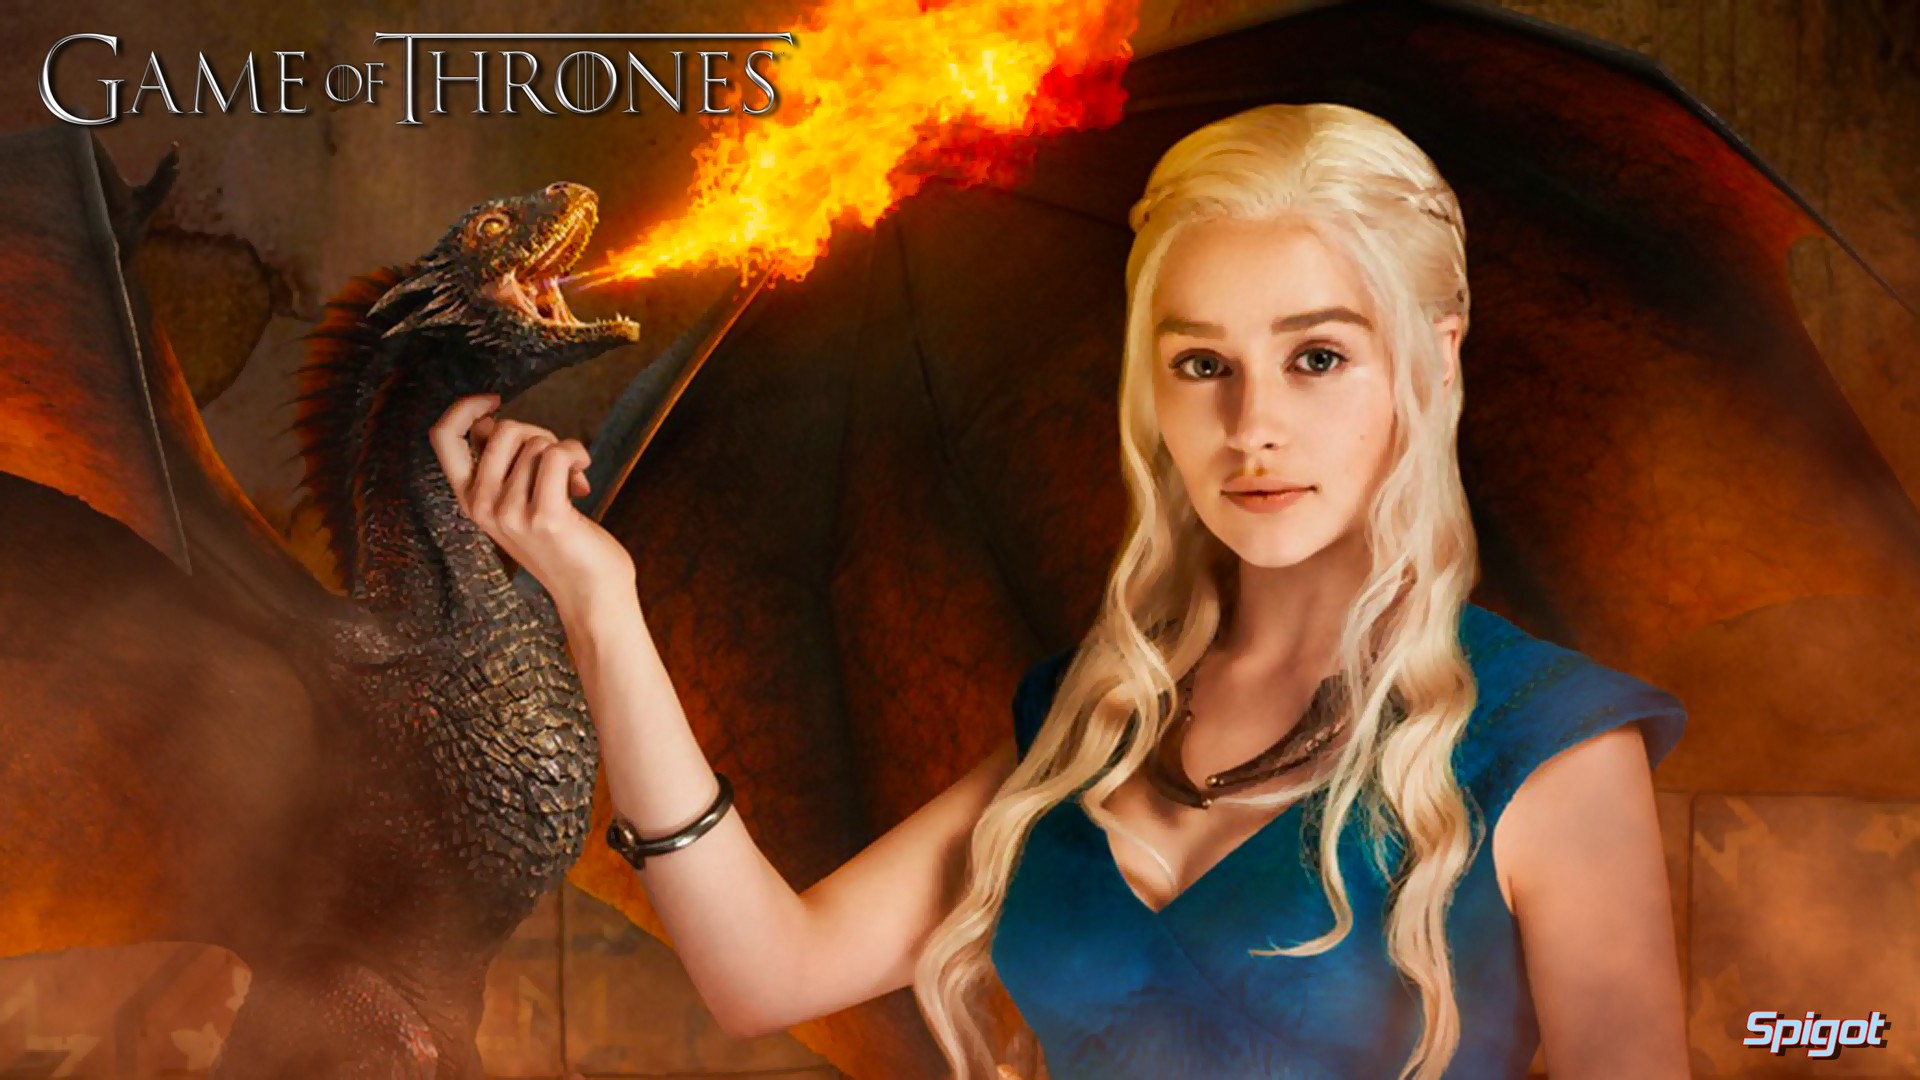 Critiques de films, cinéma, DVD...2 - Page 5 Dany-Dragon-Wallpaper-game-of-thrones-dragons-34476263-1920-1080